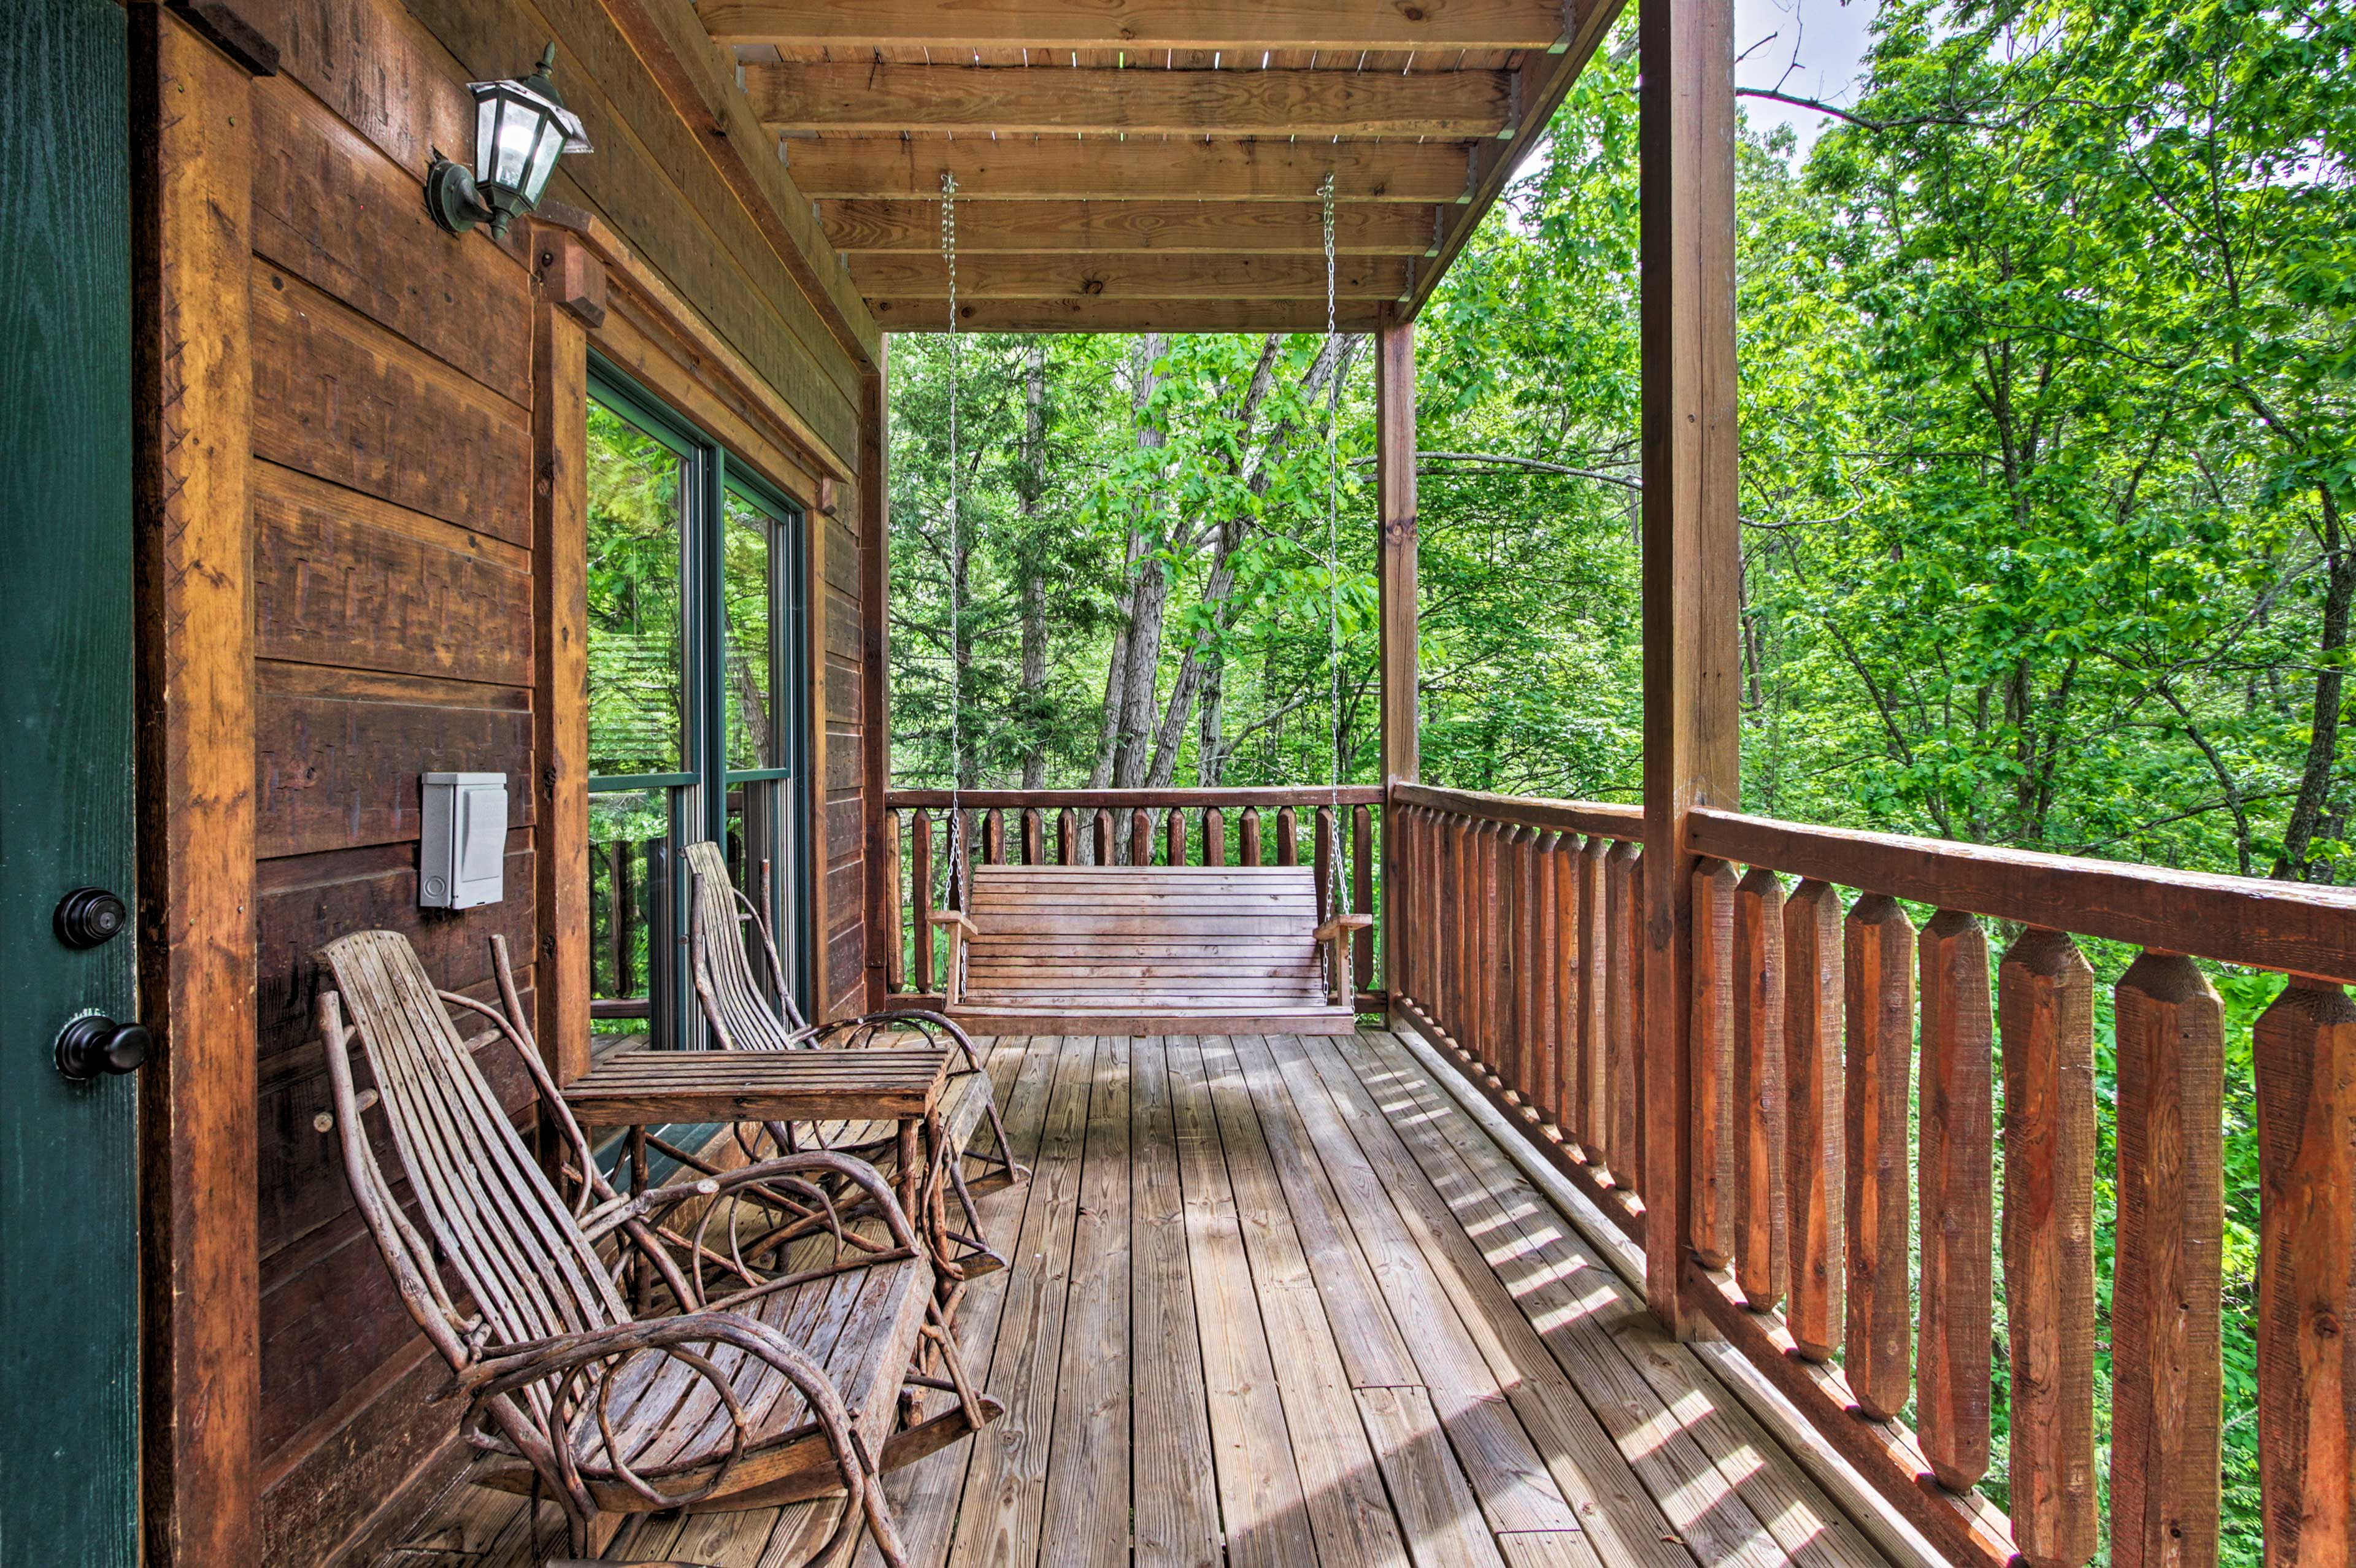 Read your favorite novel on the porch swing.